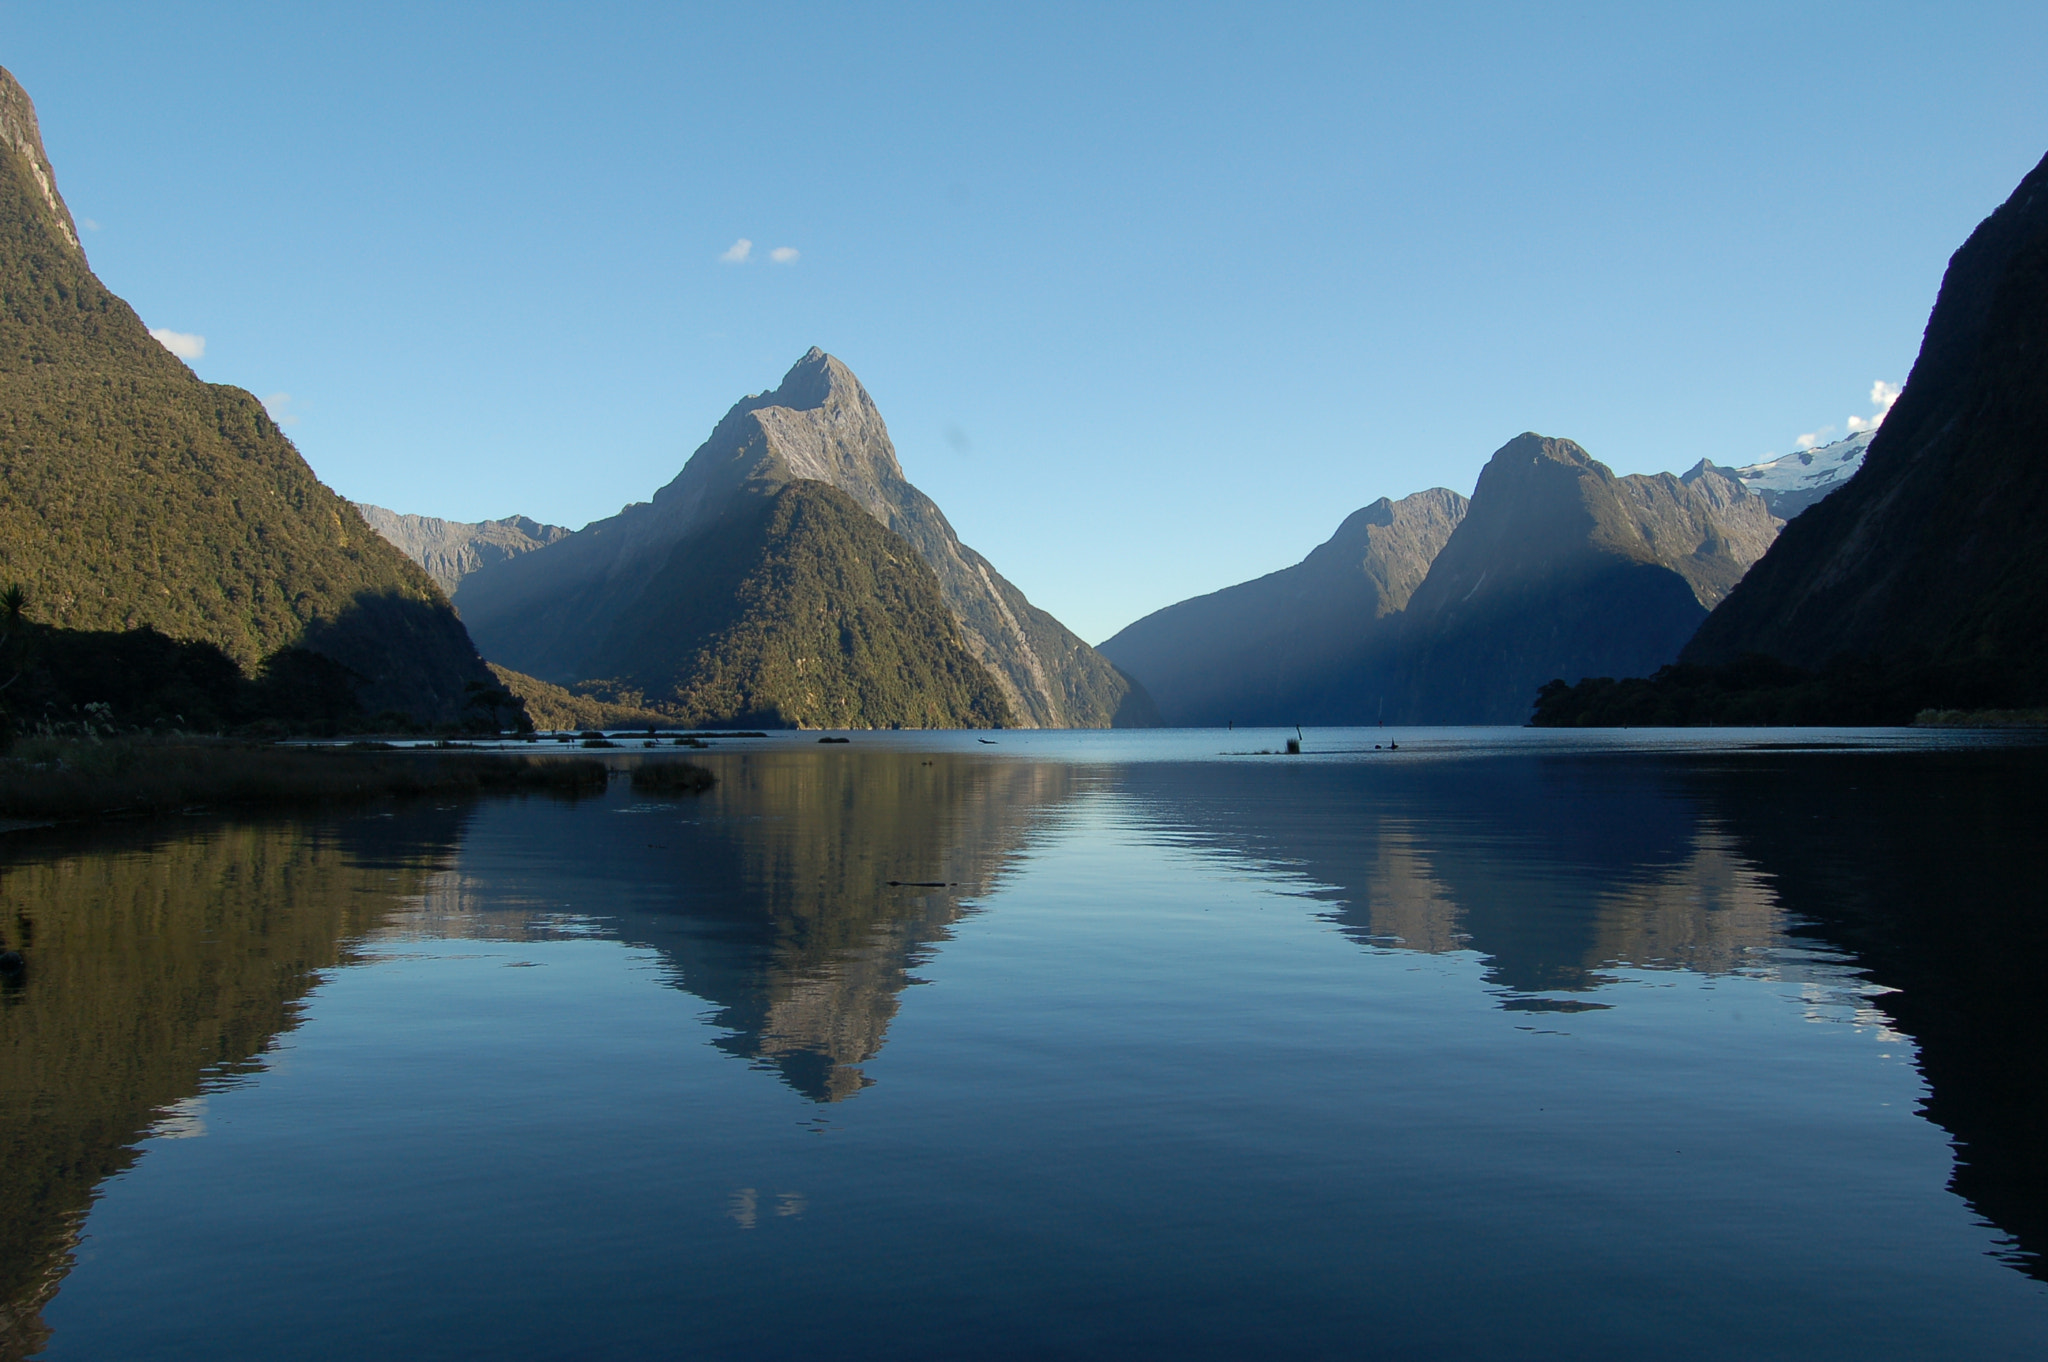 Photograph Milford Sound by Yanis Ourabah on 500px